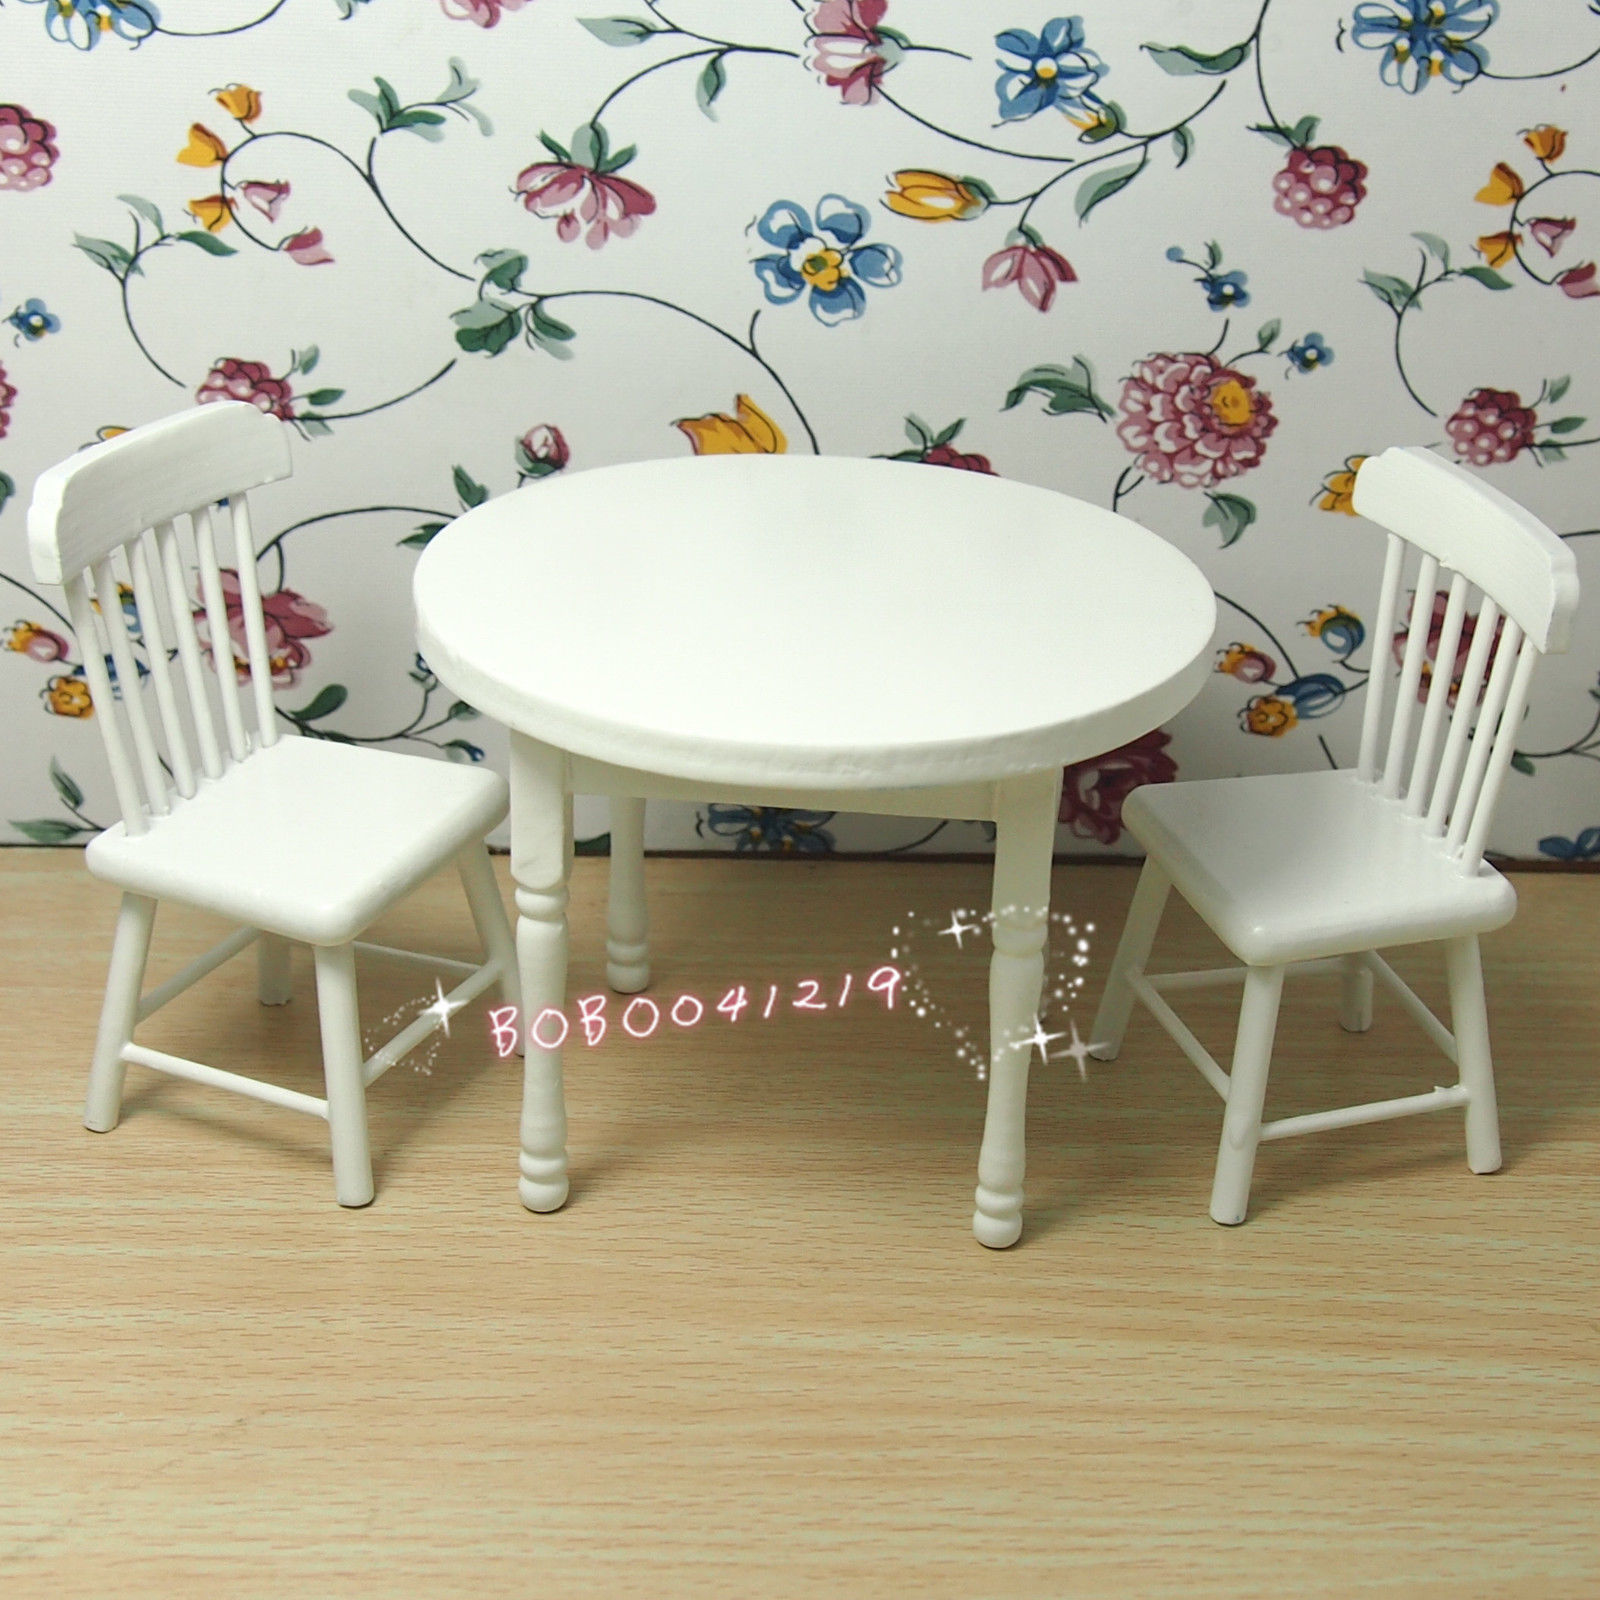 Dollhouse Miniature 1 12 Living Room Wooden White Round